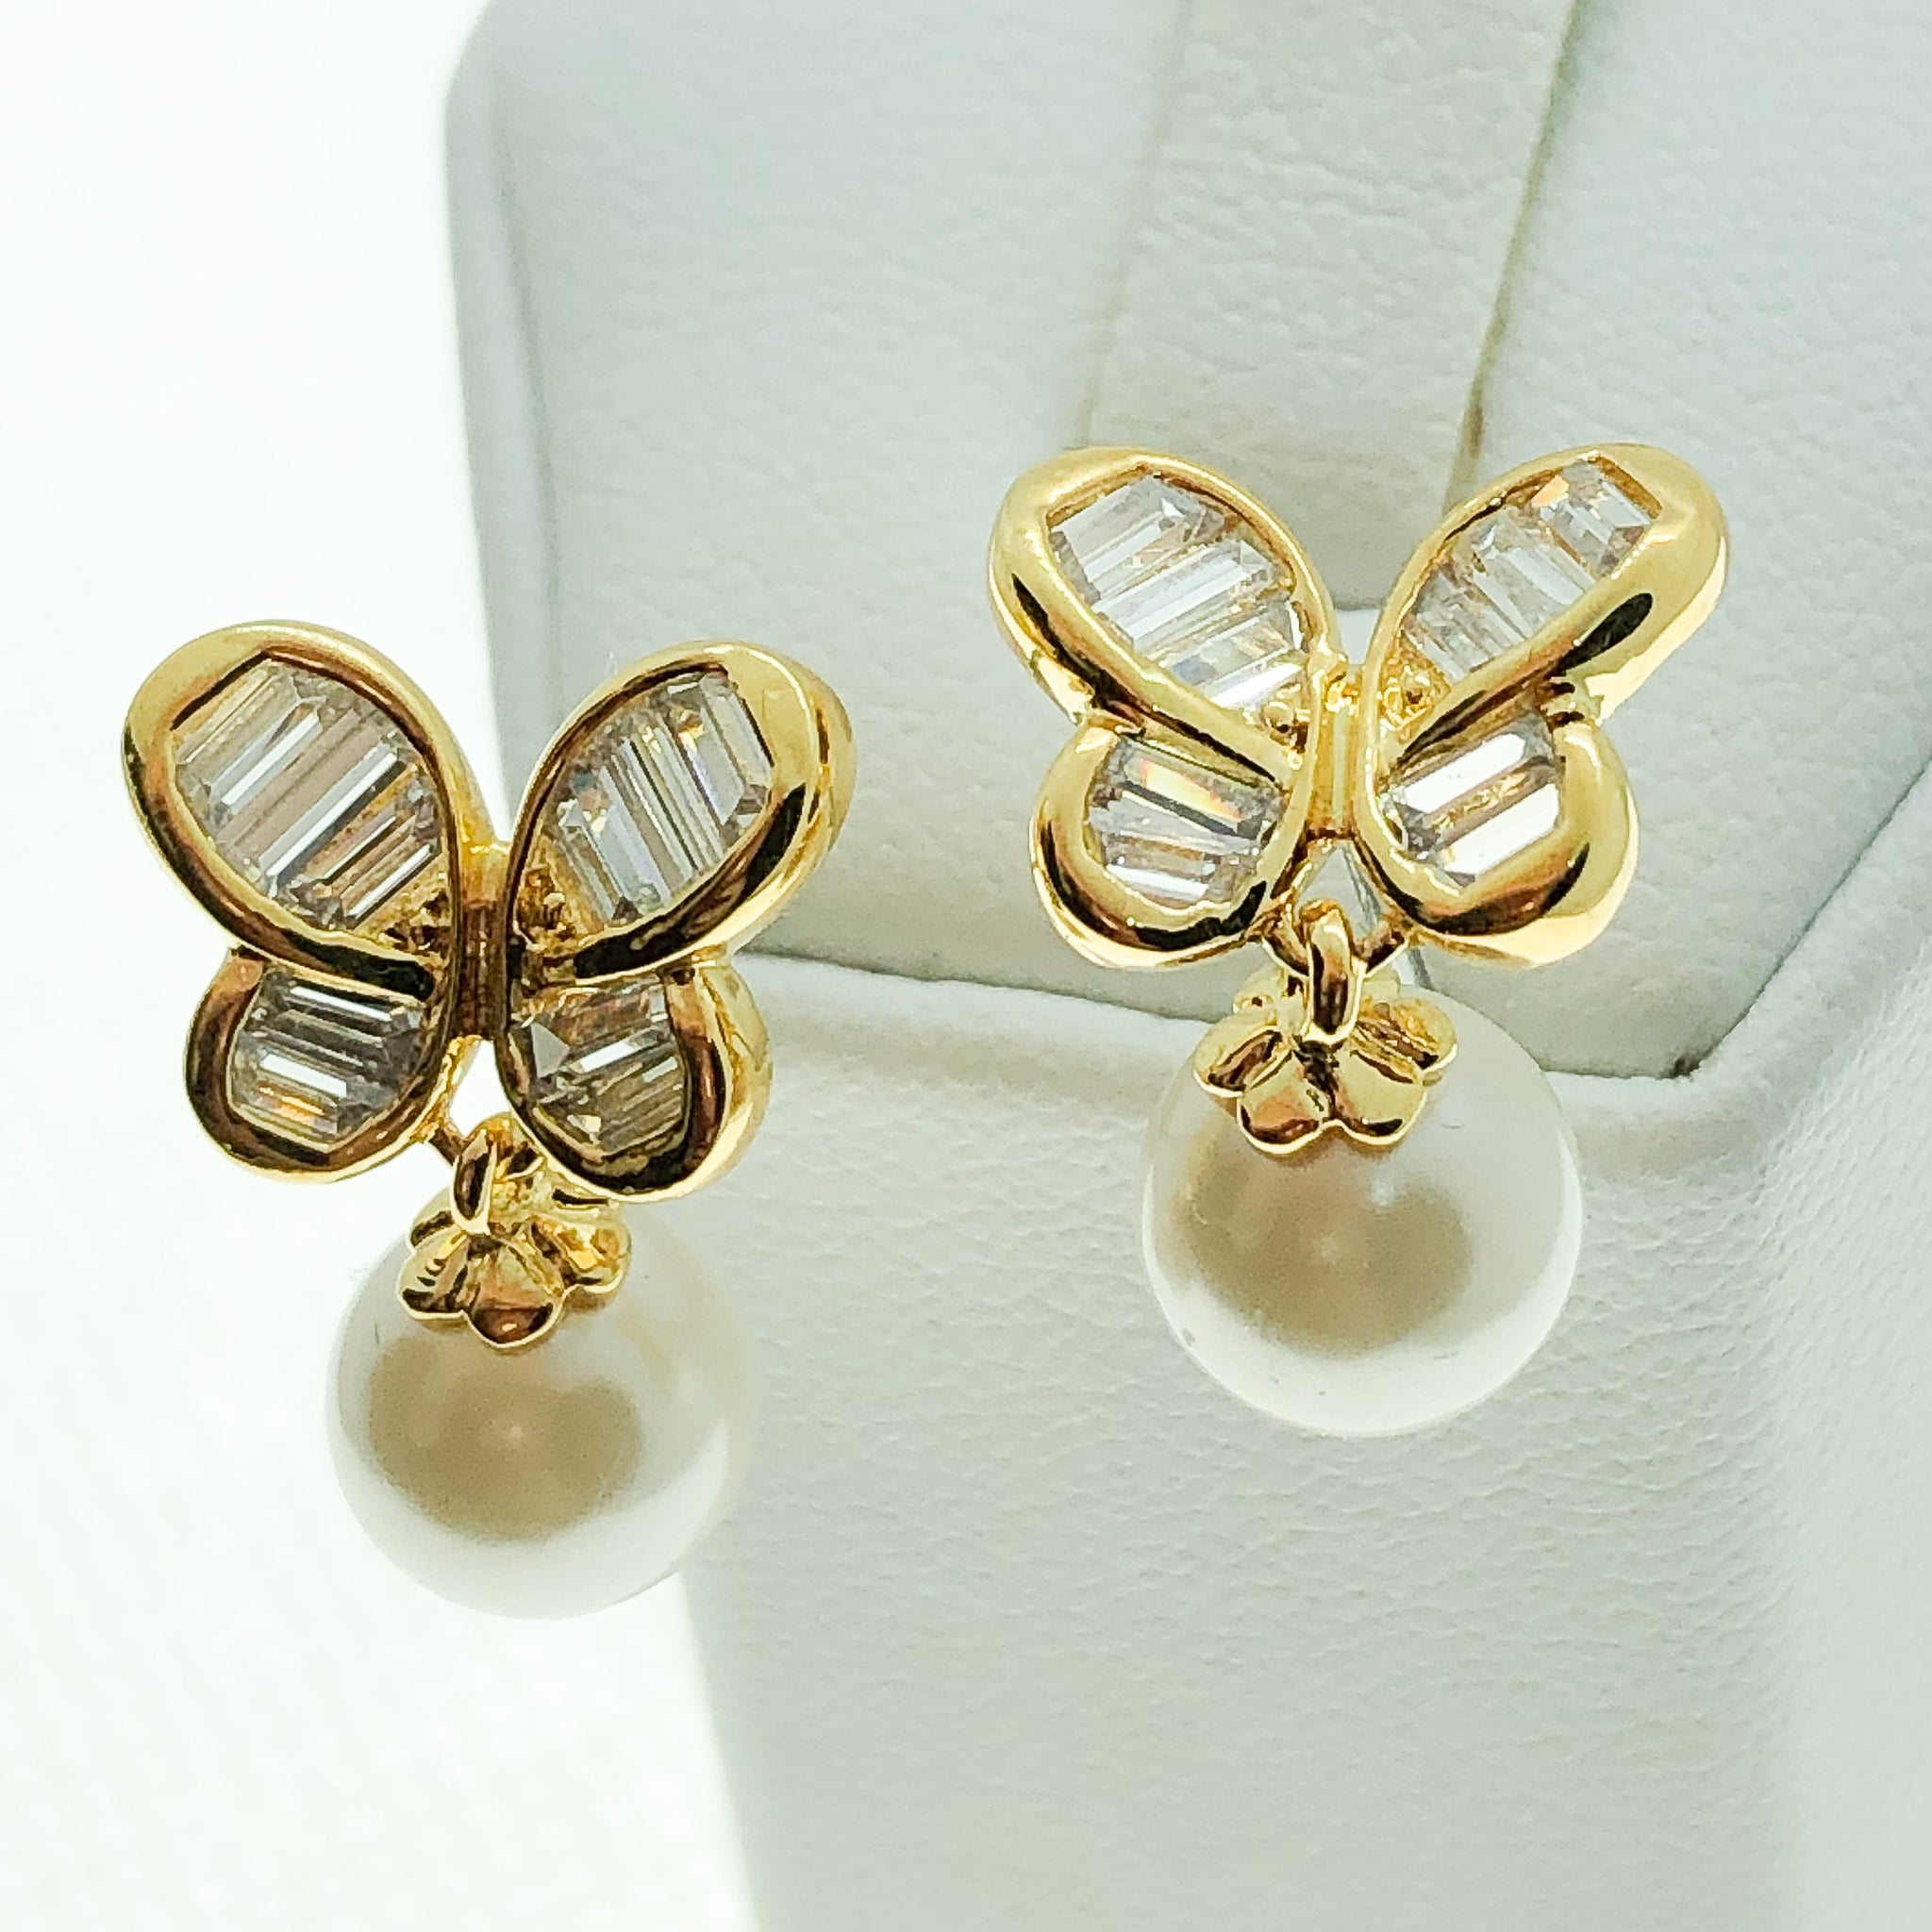 ID: E2292 Women Jewelry 18K Yellow Gold GF Pearl with Clear Round Stones Earrings Fashion Party Lady Butterfly Drop Stud